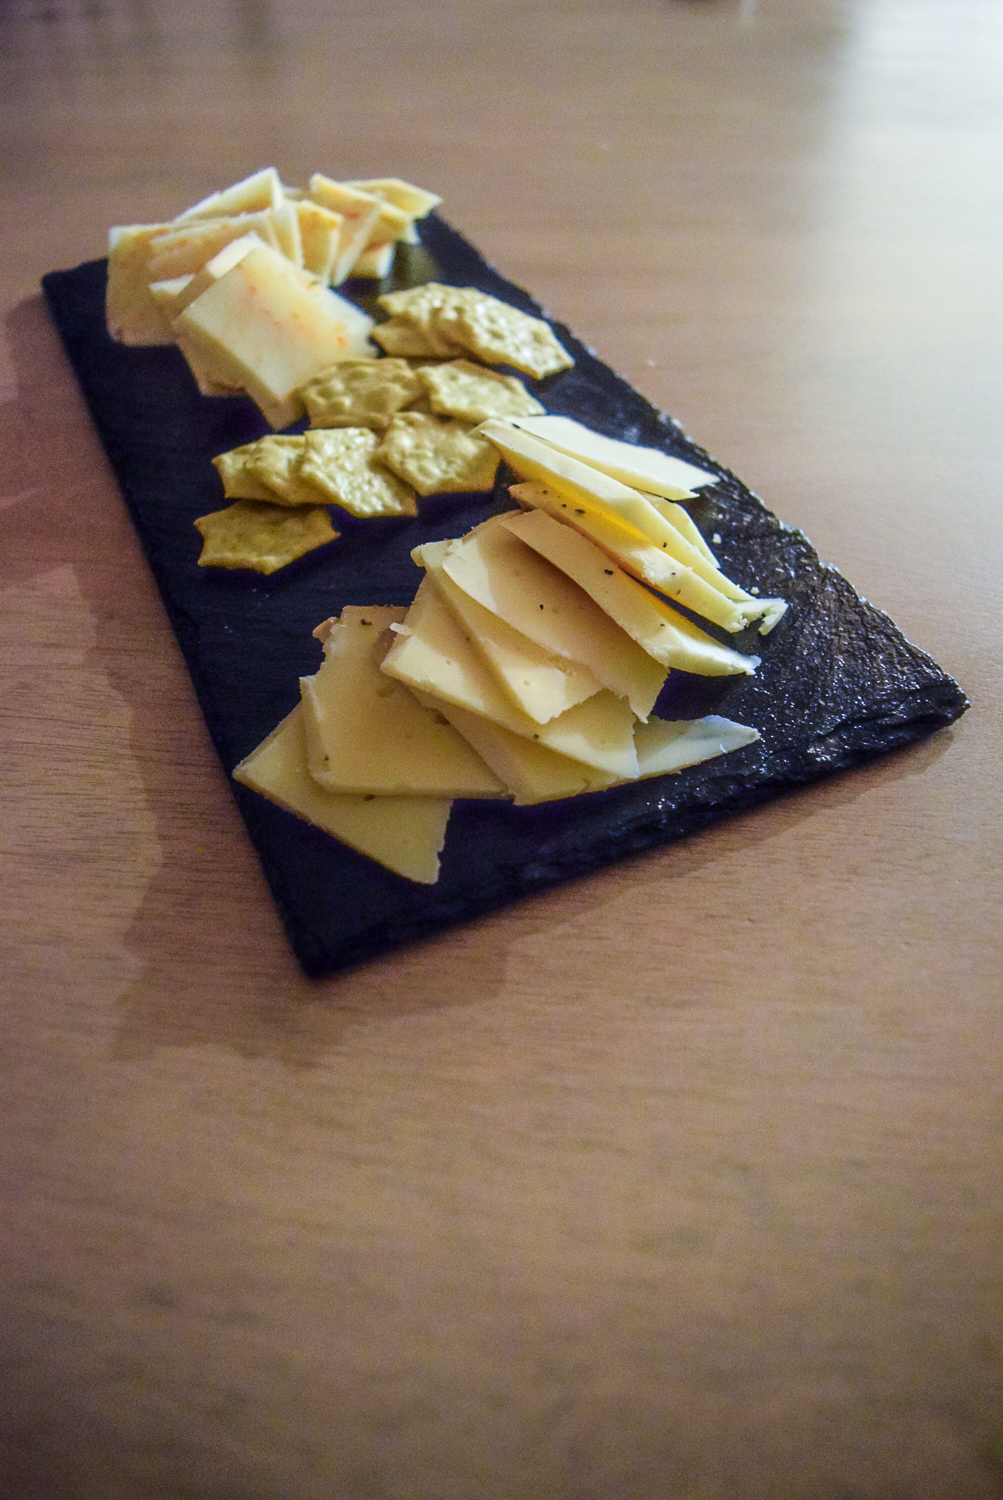 Front view of Gluten-Free Peppery Slate Cheeseboard with Trader Joe's Gluten-Free Savory Thin Mini Edamame Crackers